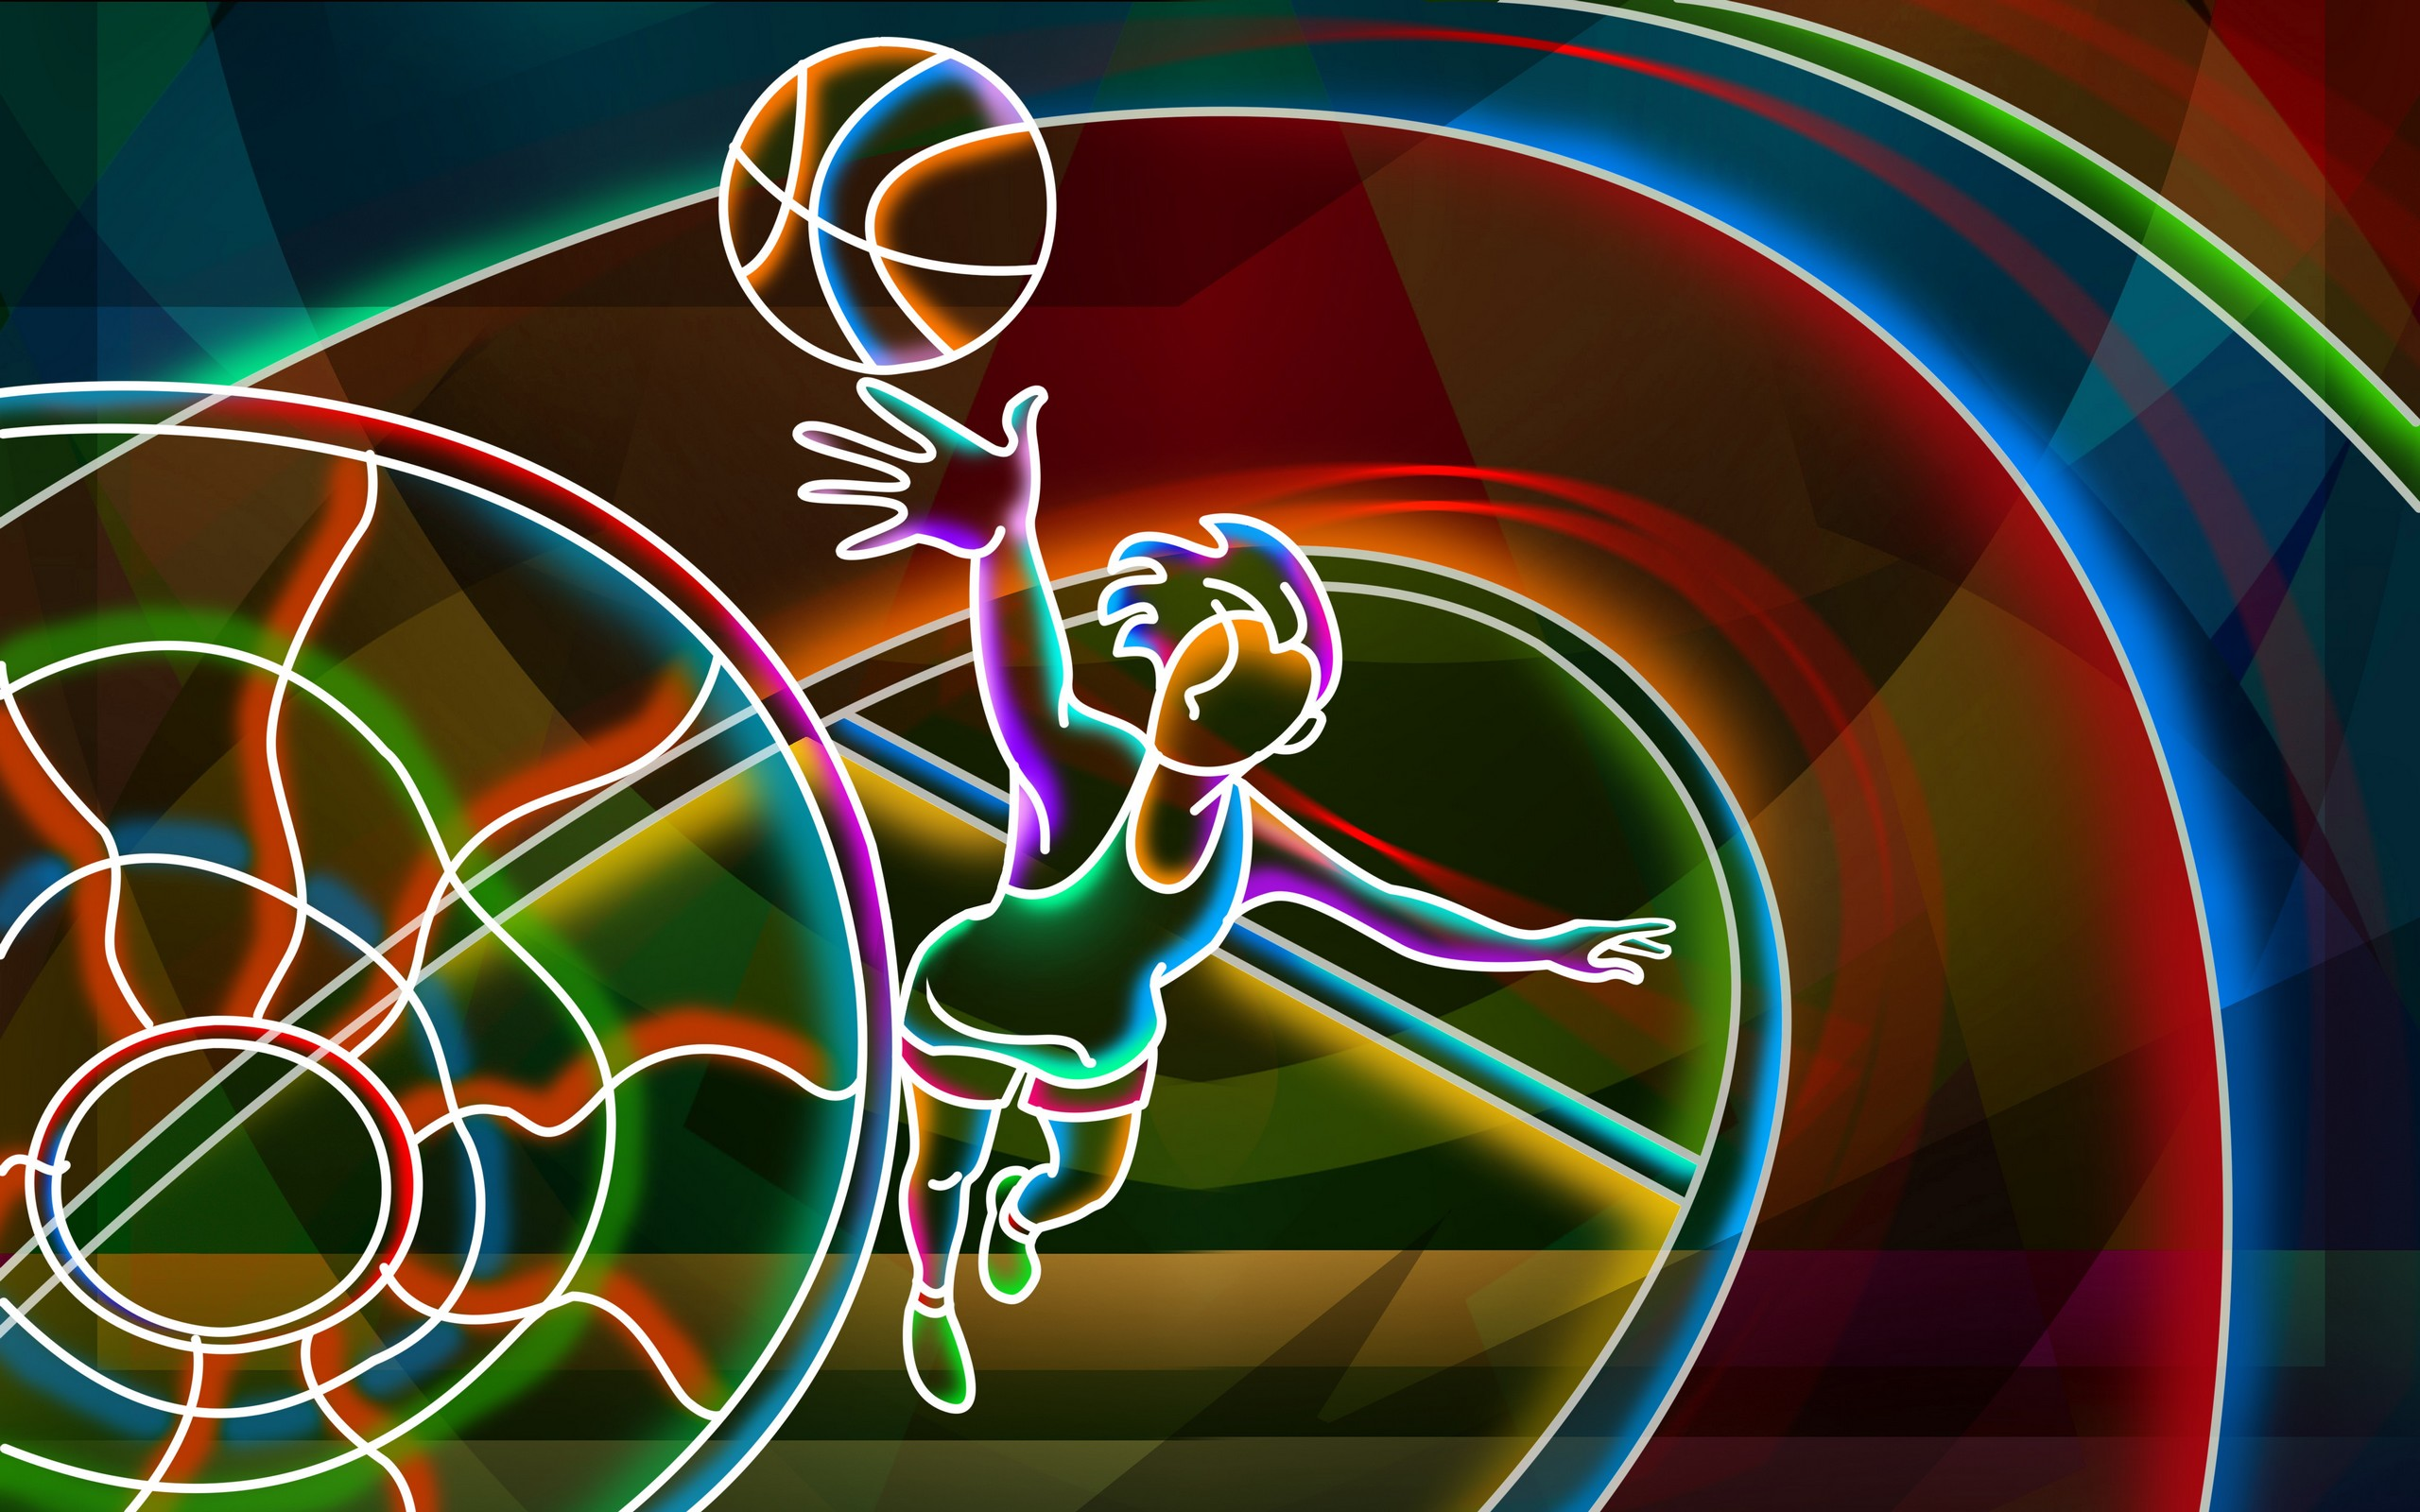 Sports - Artistic Wallpaper